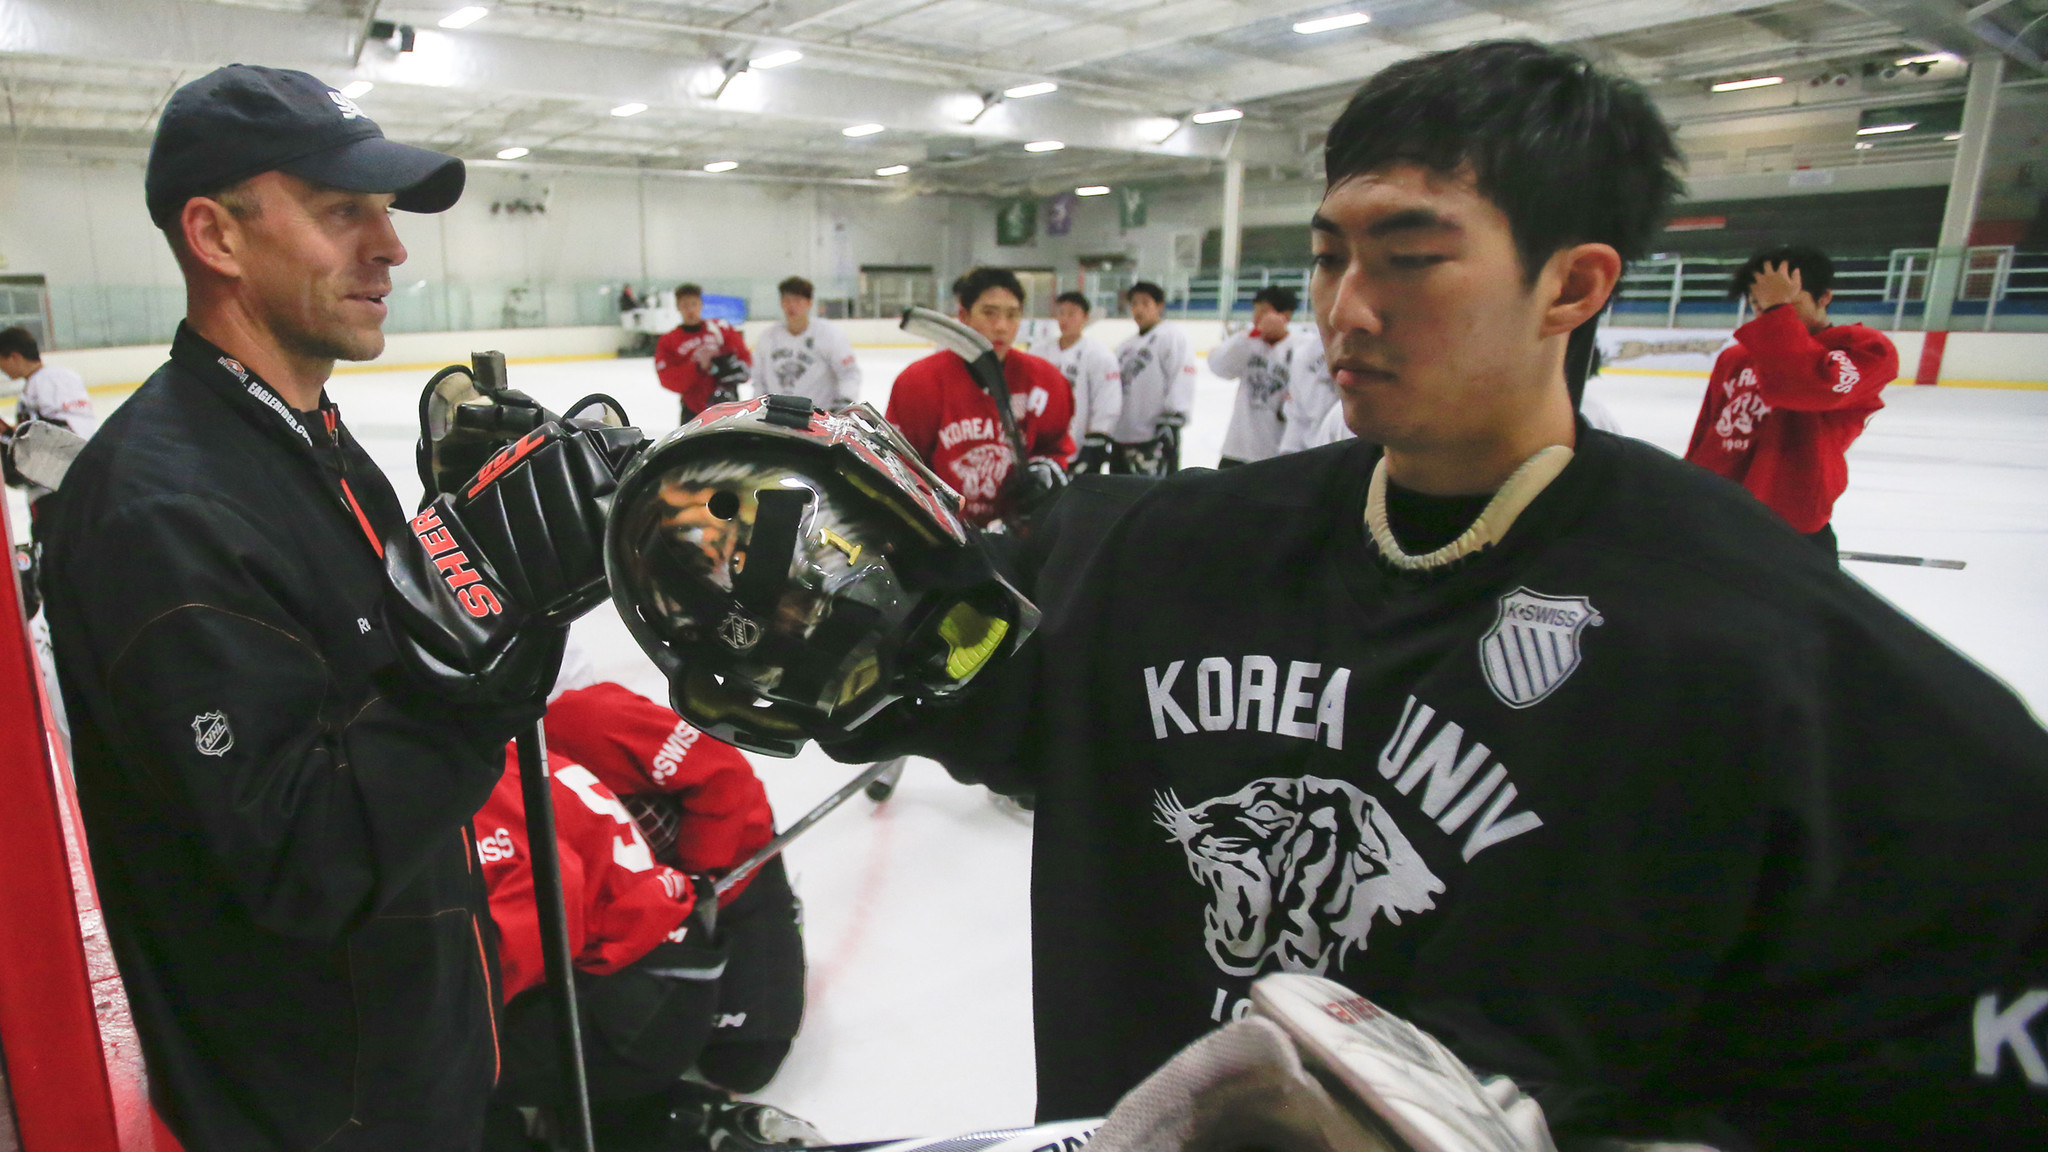 Korea University hockey team brings its training to California